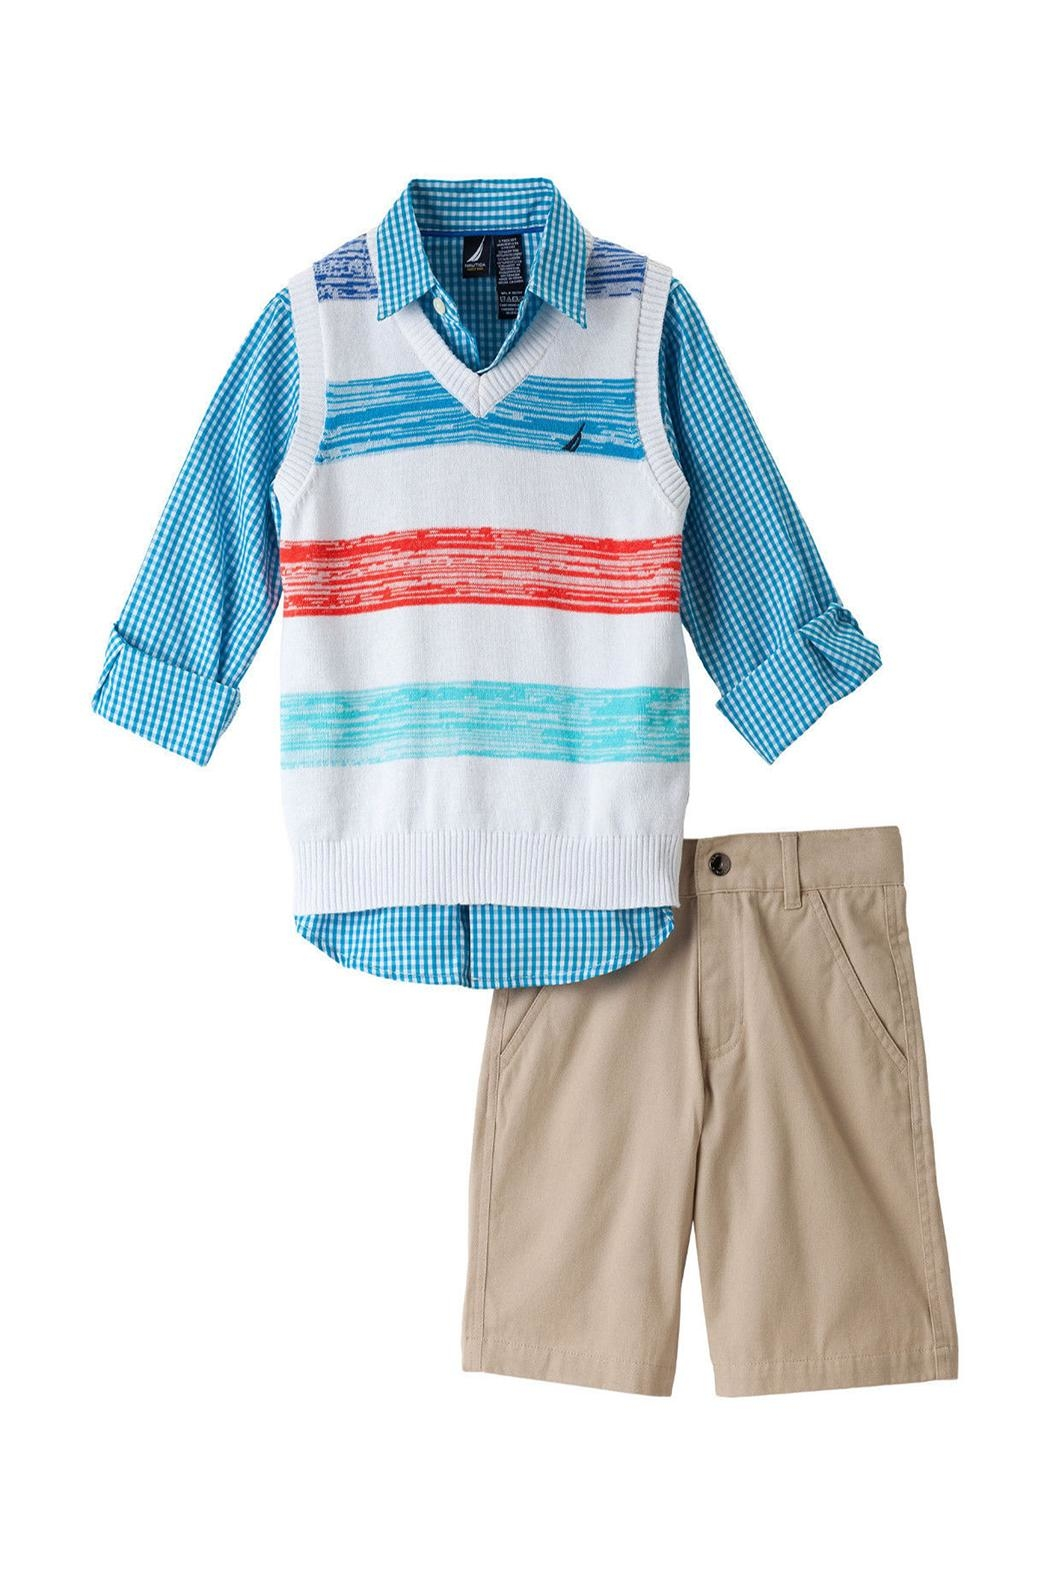 Nautica Vested Shorts Set - Front Cropped Image